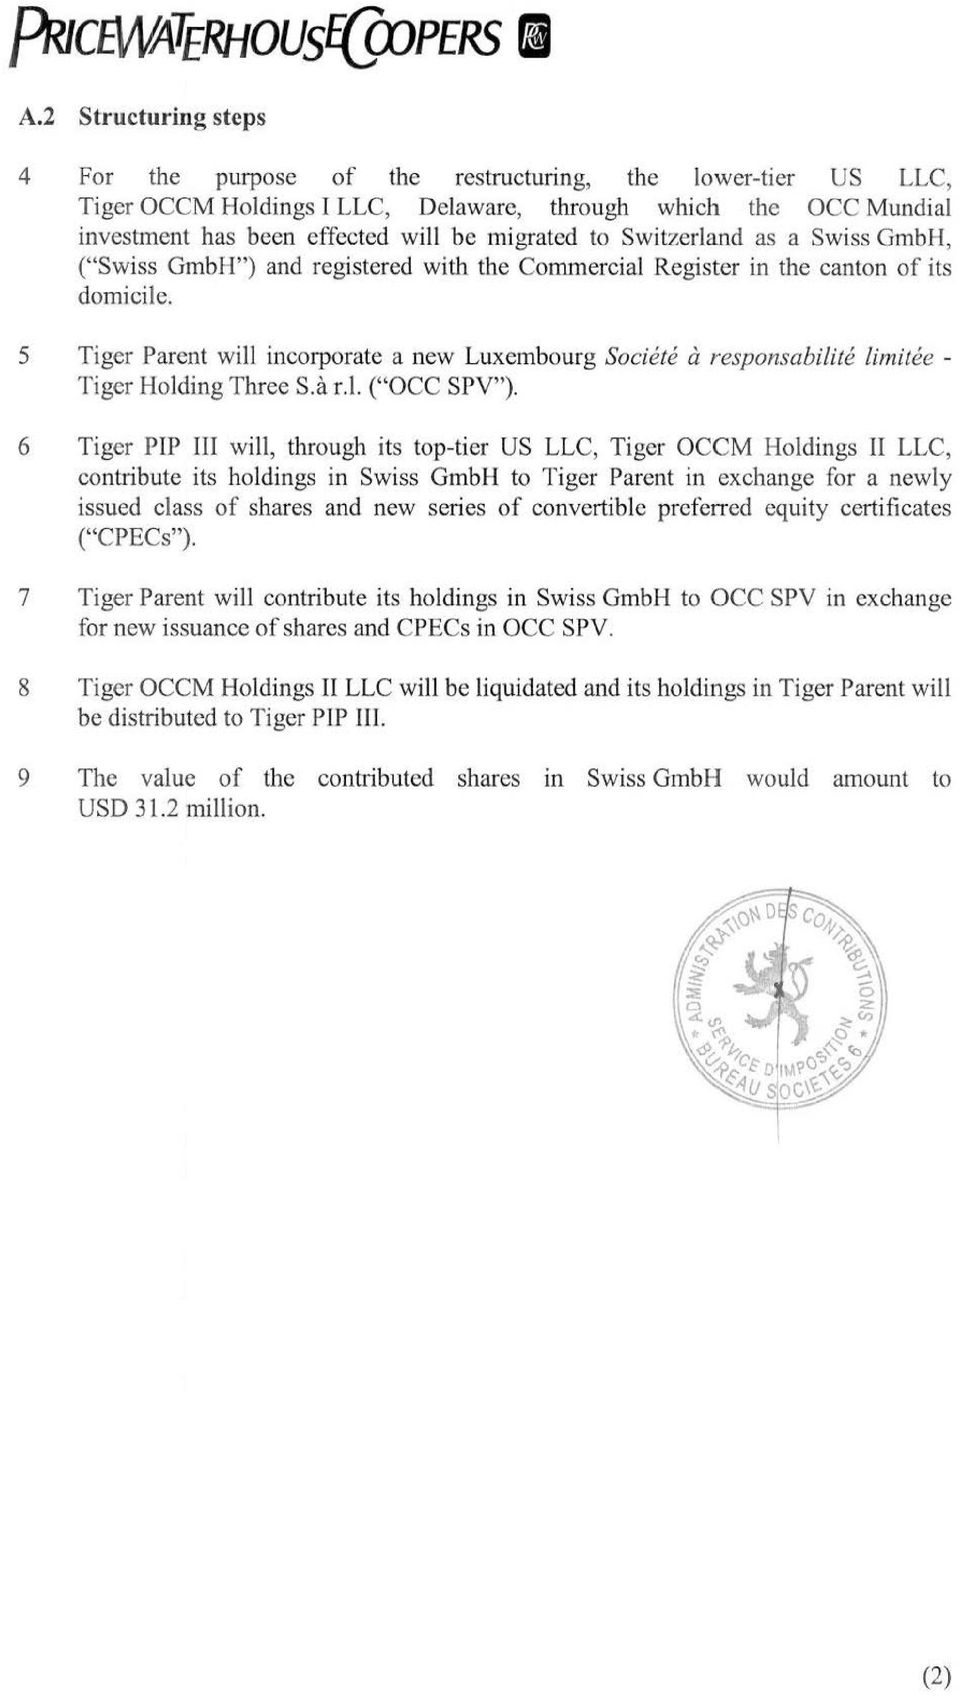 "5 Tiger Parent will incorporate a new Luxembourg Societe a responsabilite limitee - Tiger Holding Three S.a r.1. (""OCC SPV"")."